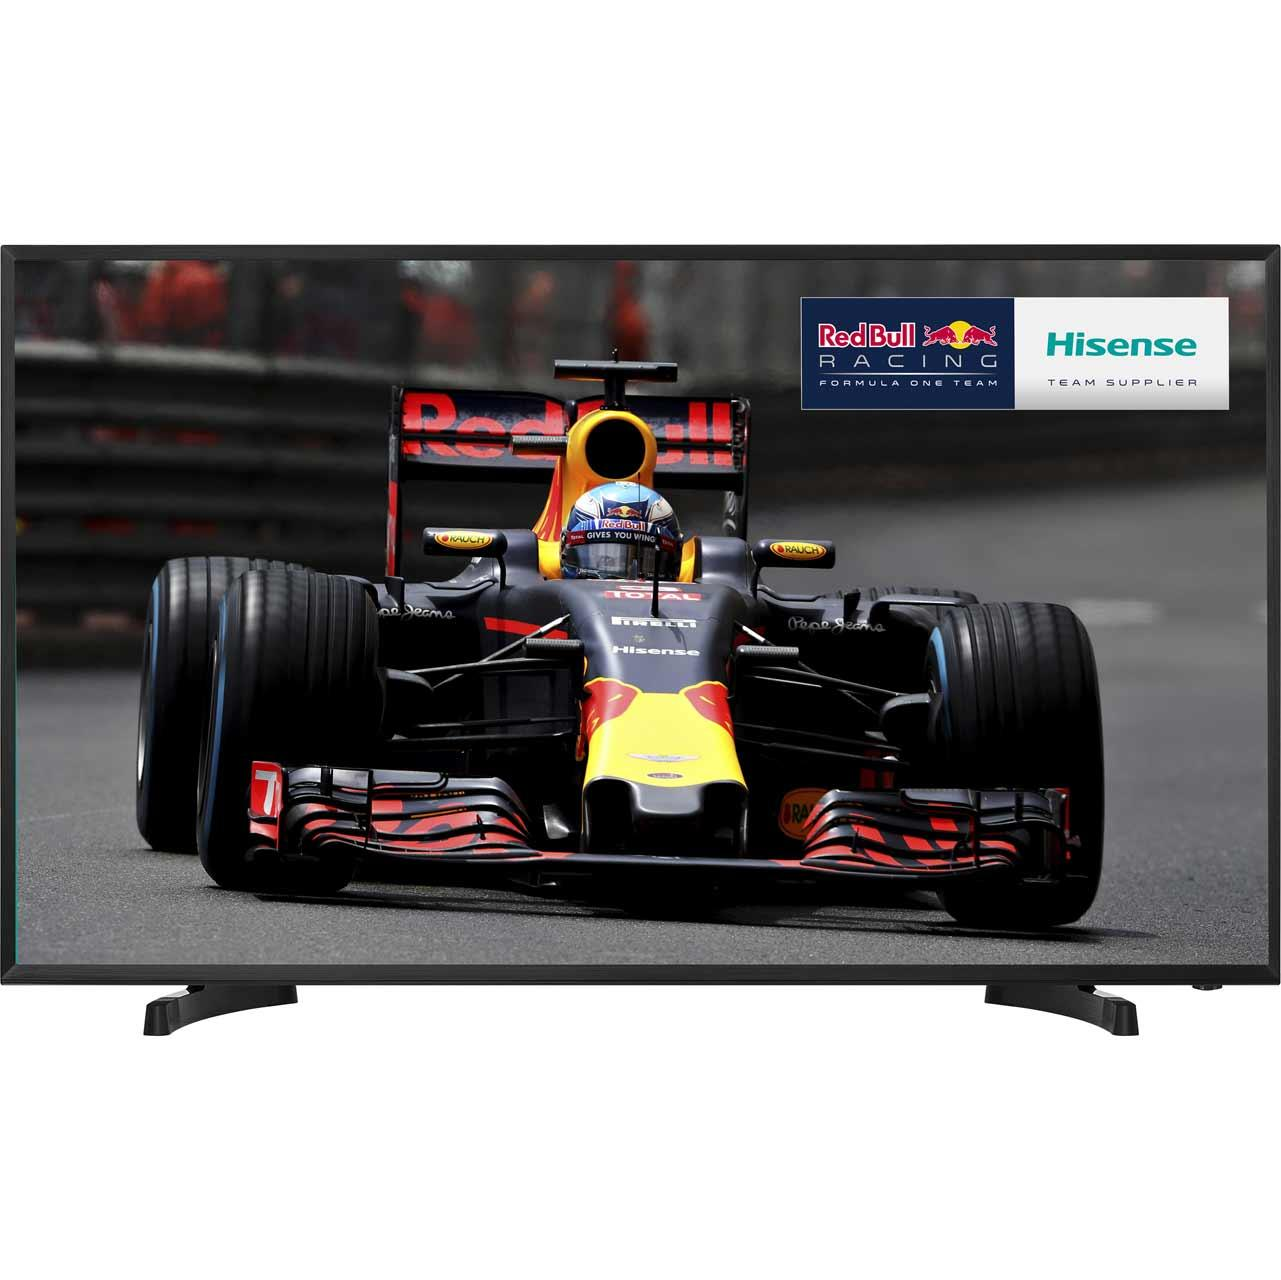 Hisense H40M2100T 40 Inch Full HD LED TV